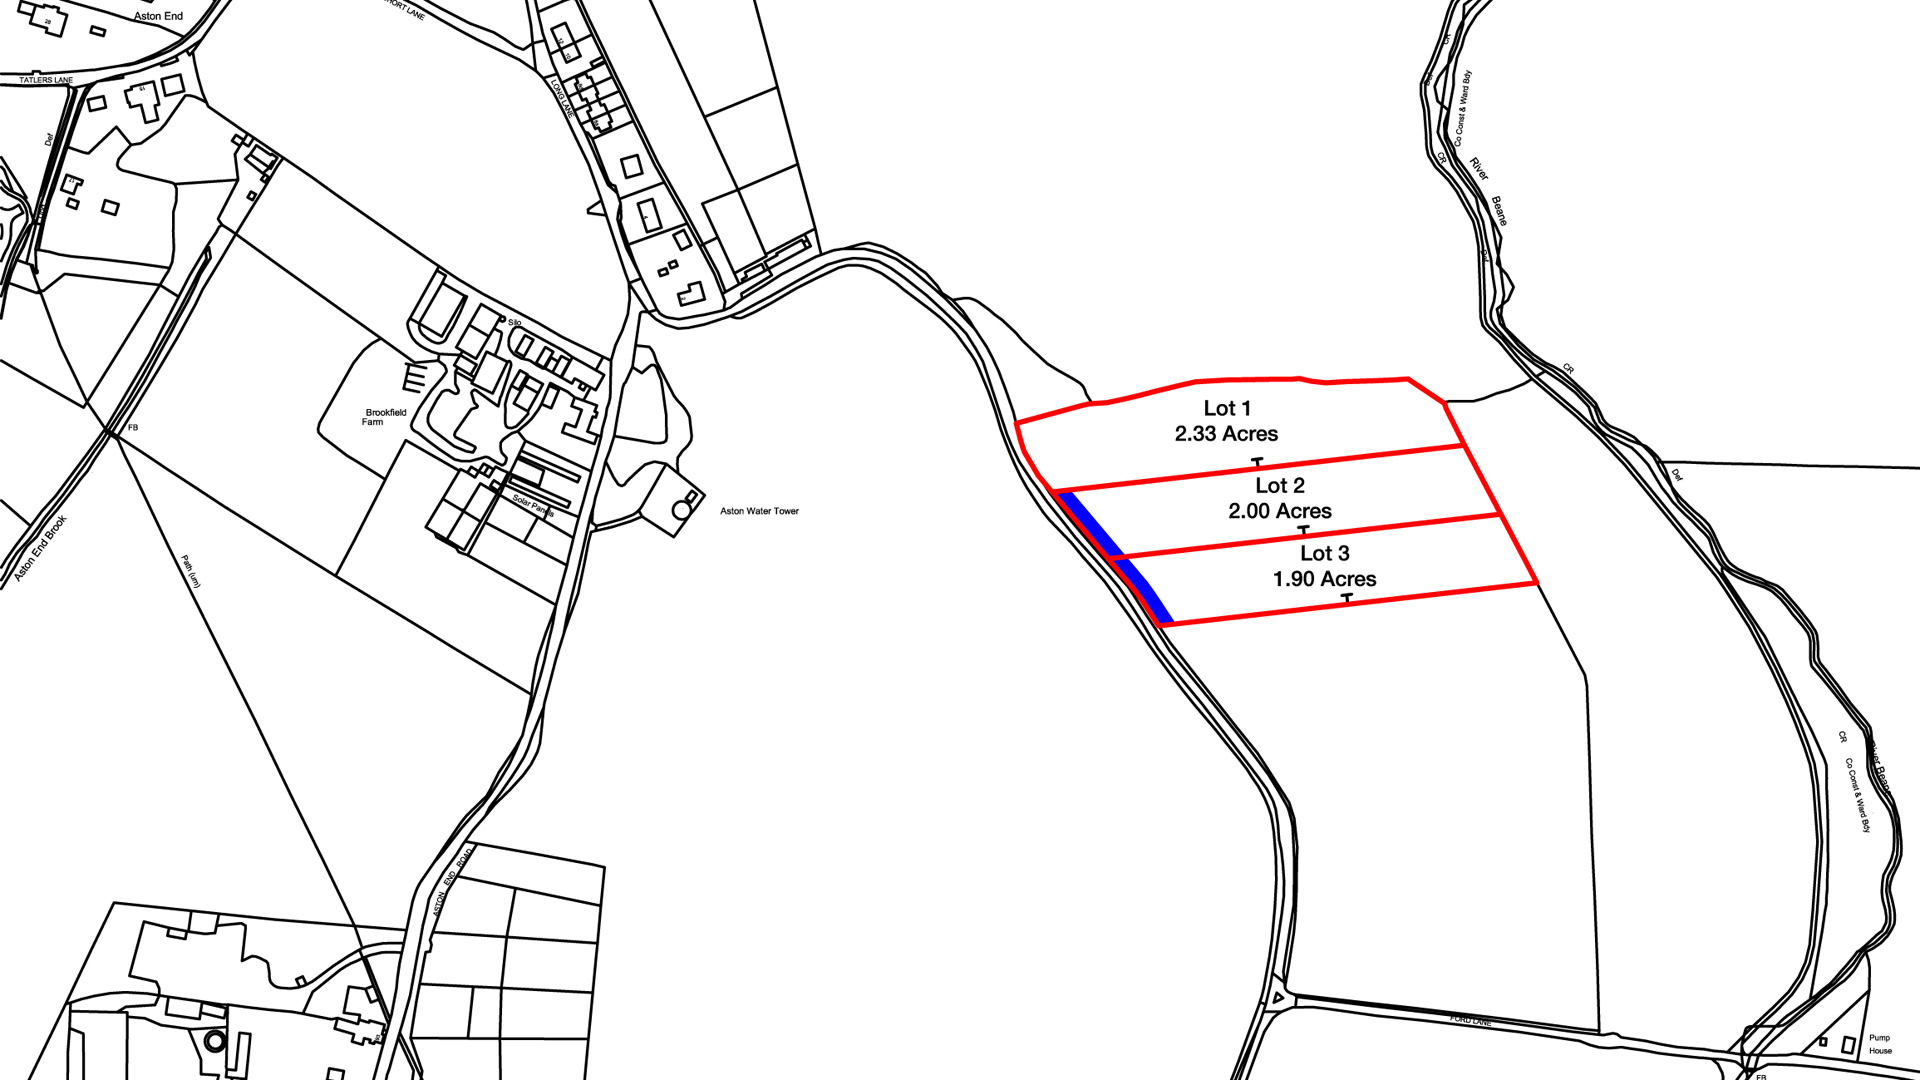 Land for sale in Aston End site plan